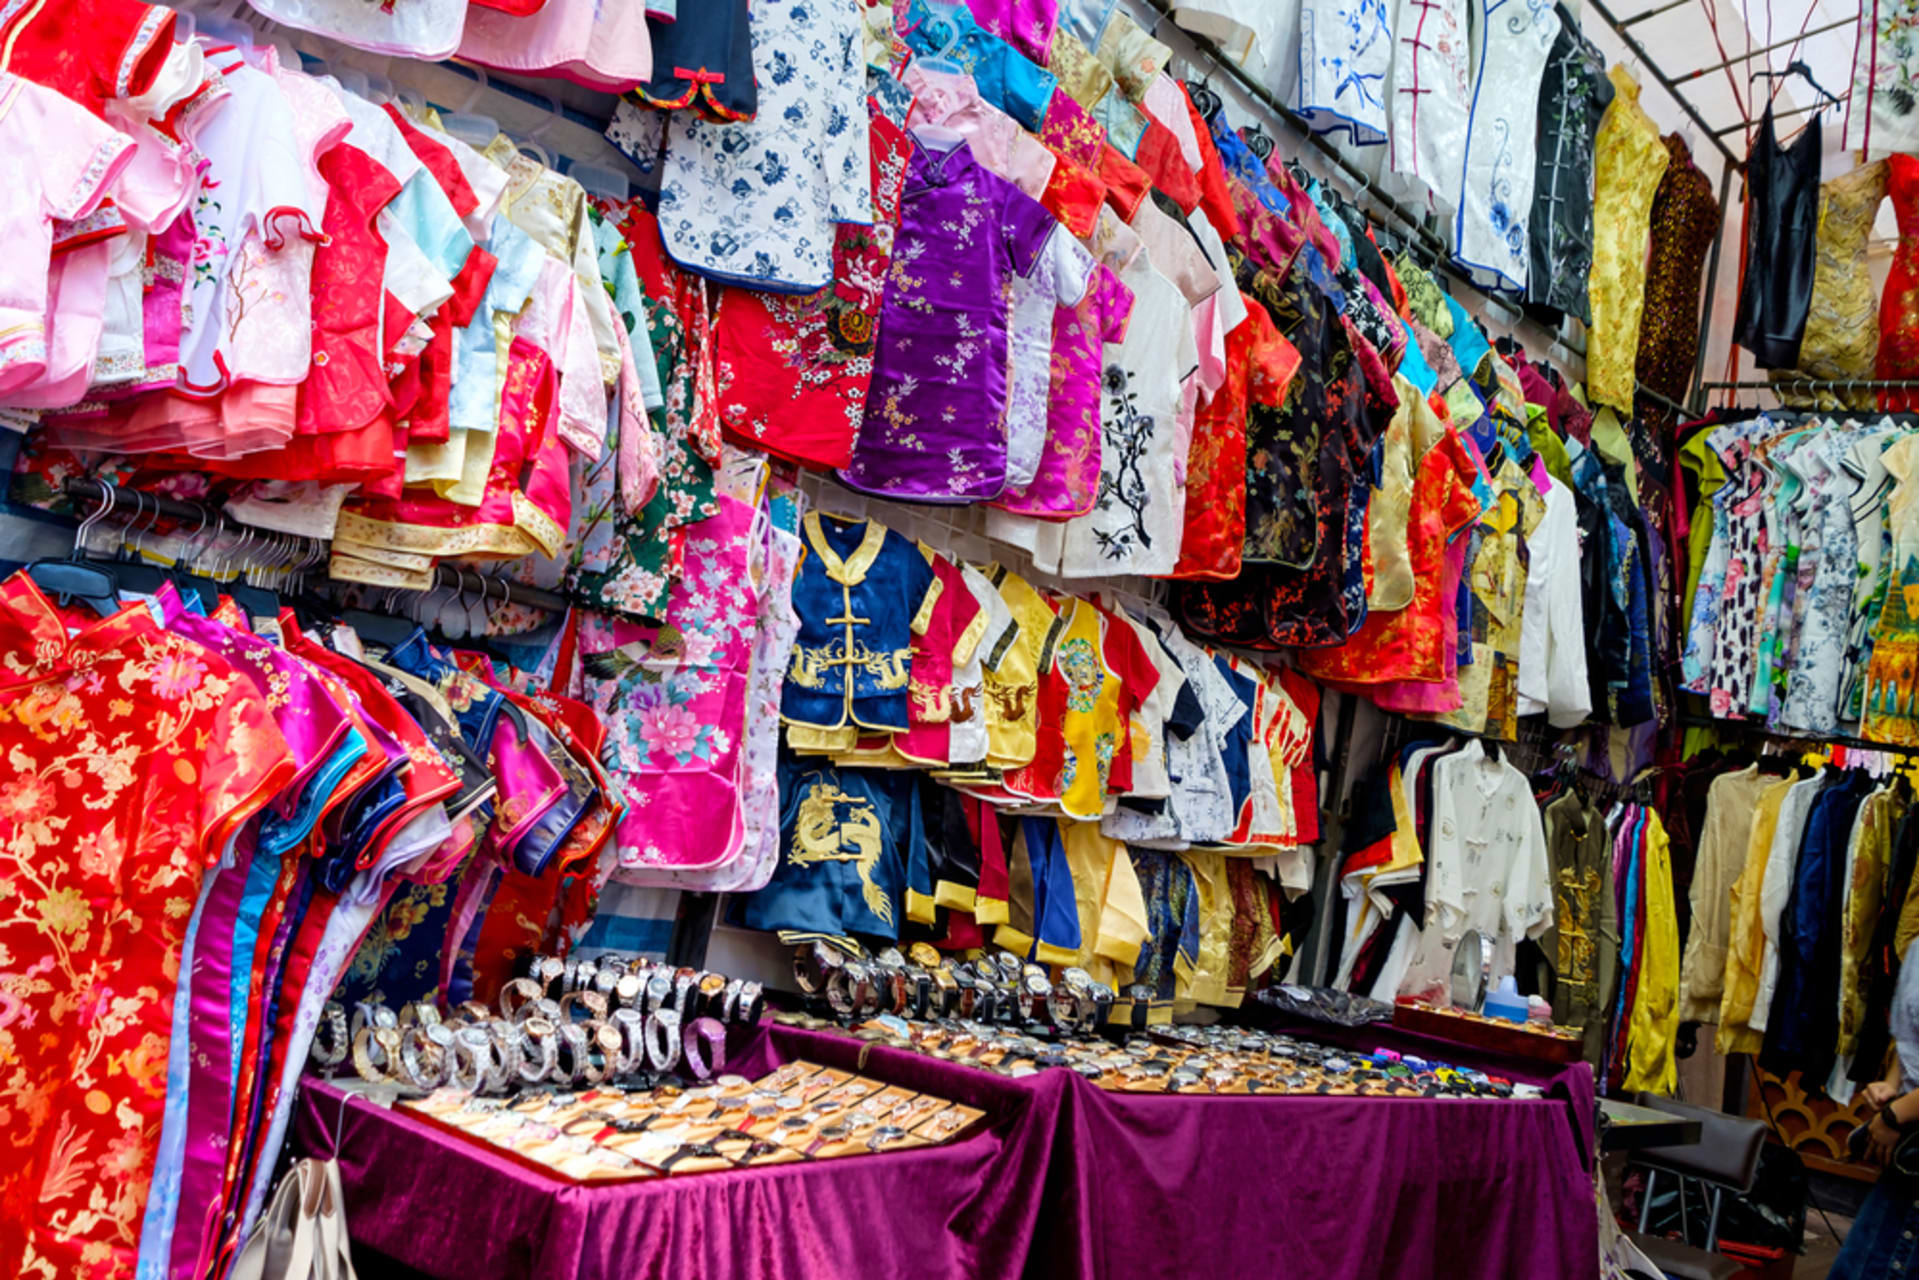 Hong Kong - Hong Kong Ladies' Market - Let's learn how to bargain in Asia!